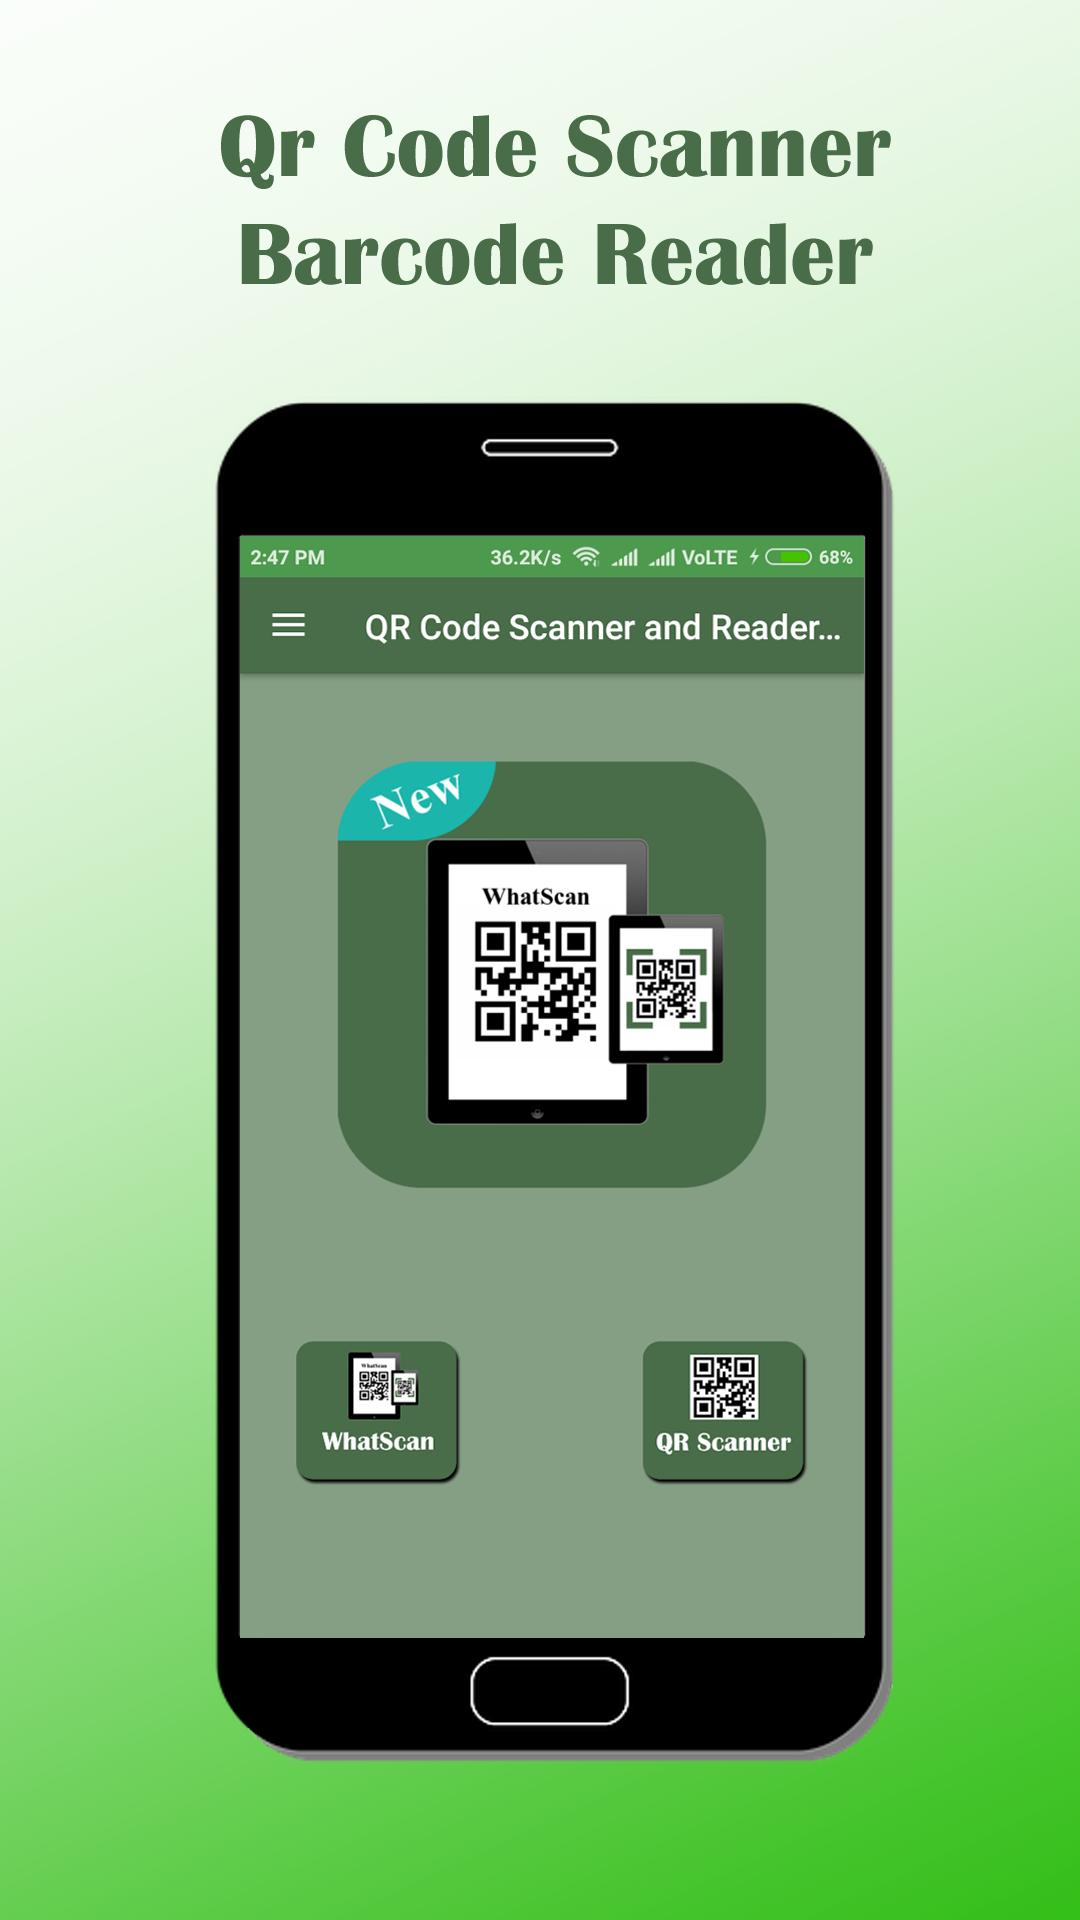 QR Code Scanner and Reader - WhatScan for Android - APK Download